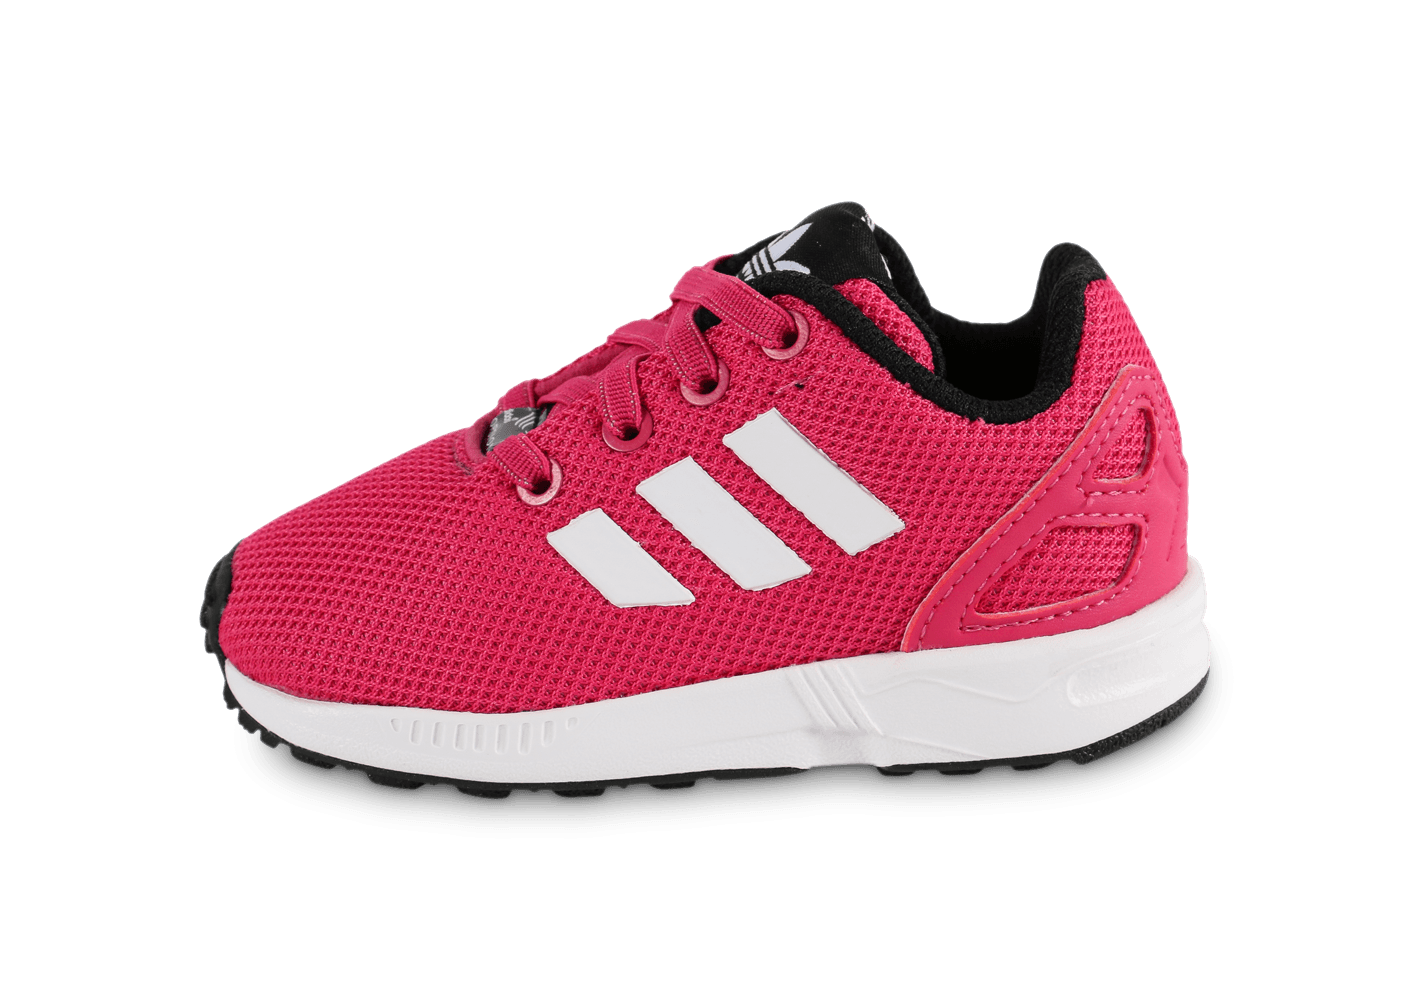 adidas chaussures rose. Black Bedroom Furniture Sets. Home Design Ideas